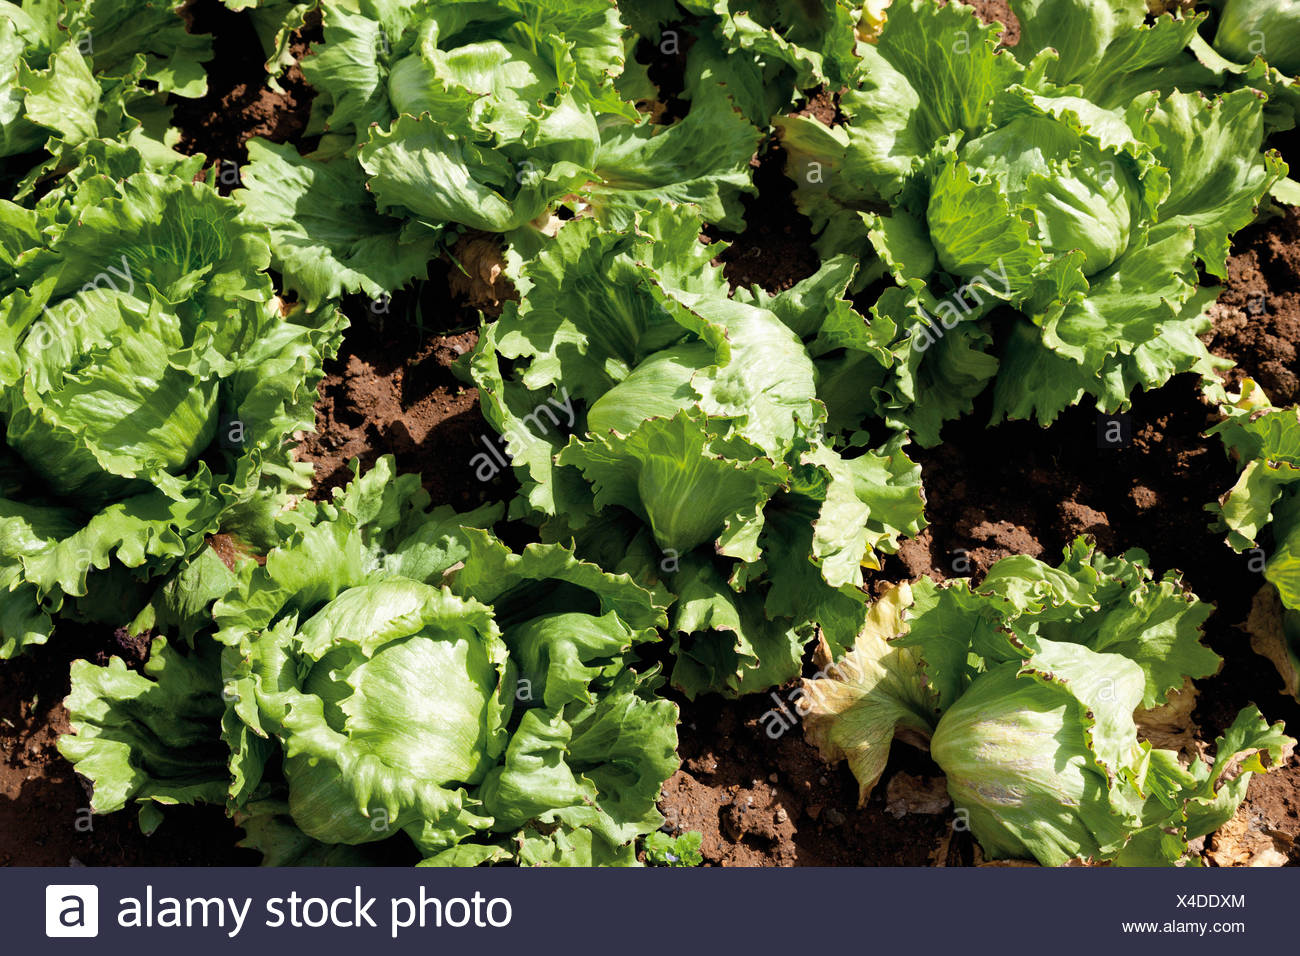 Germany, View of iceberg lettuce cultivation - Stock Image